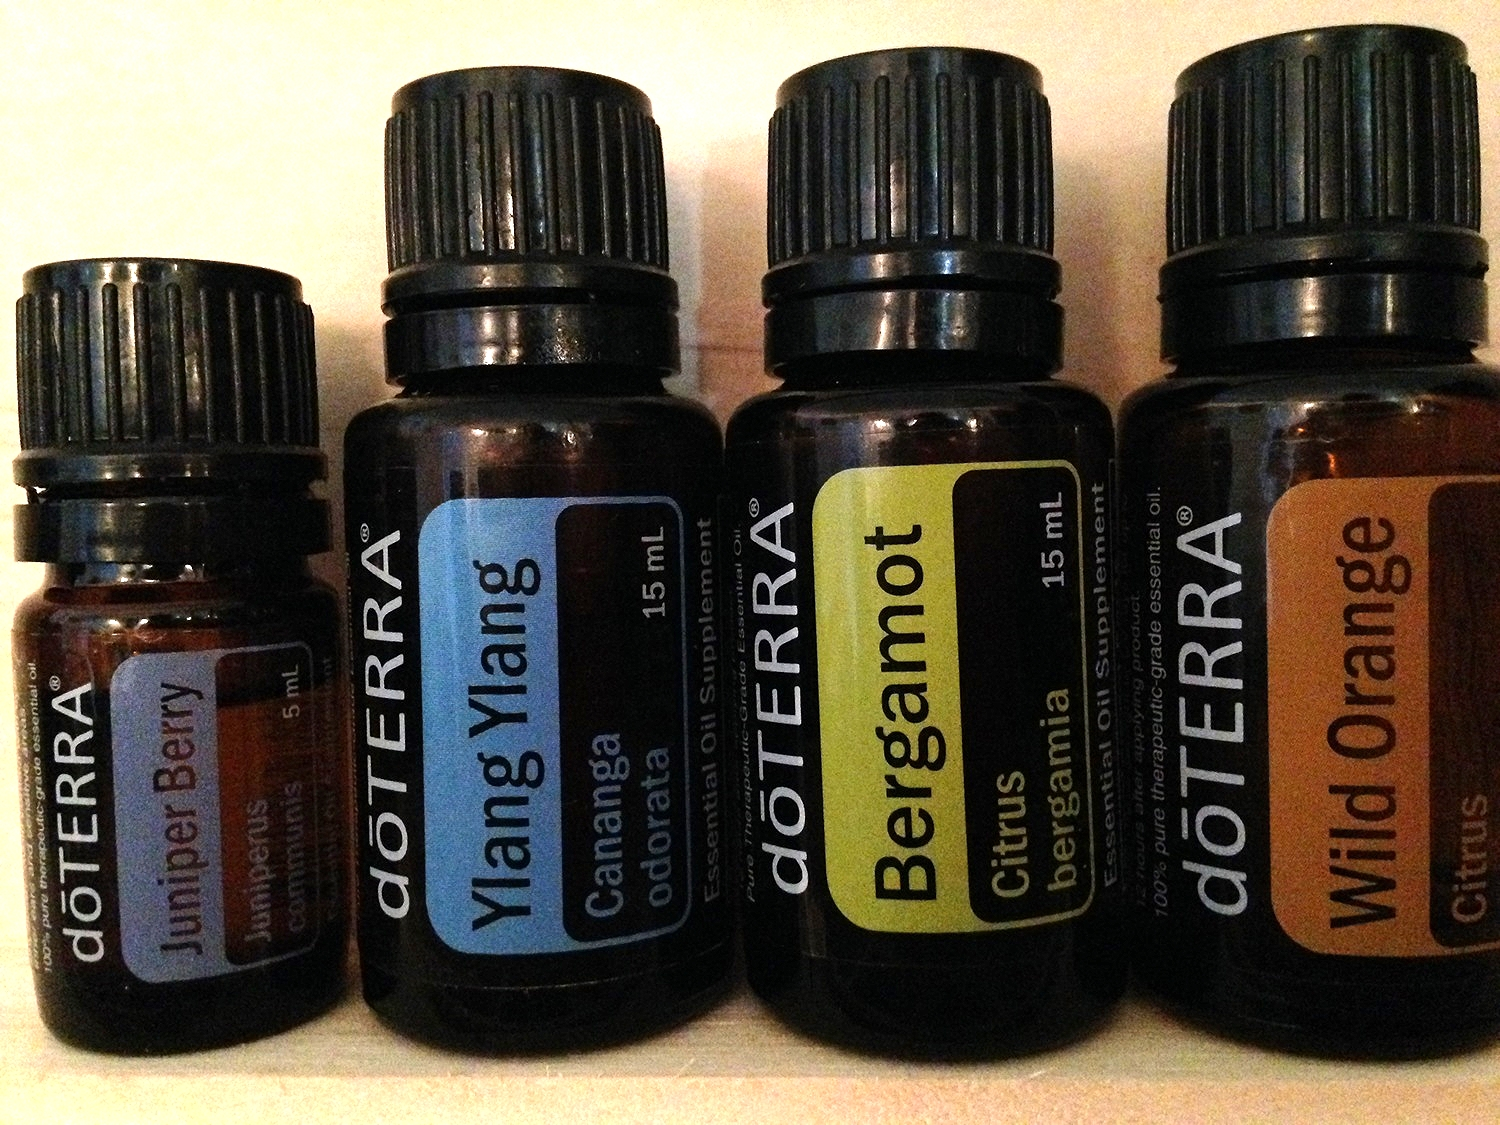 *I use all doTERRA essential oils because they are certified pure organic and therapeutic grade*